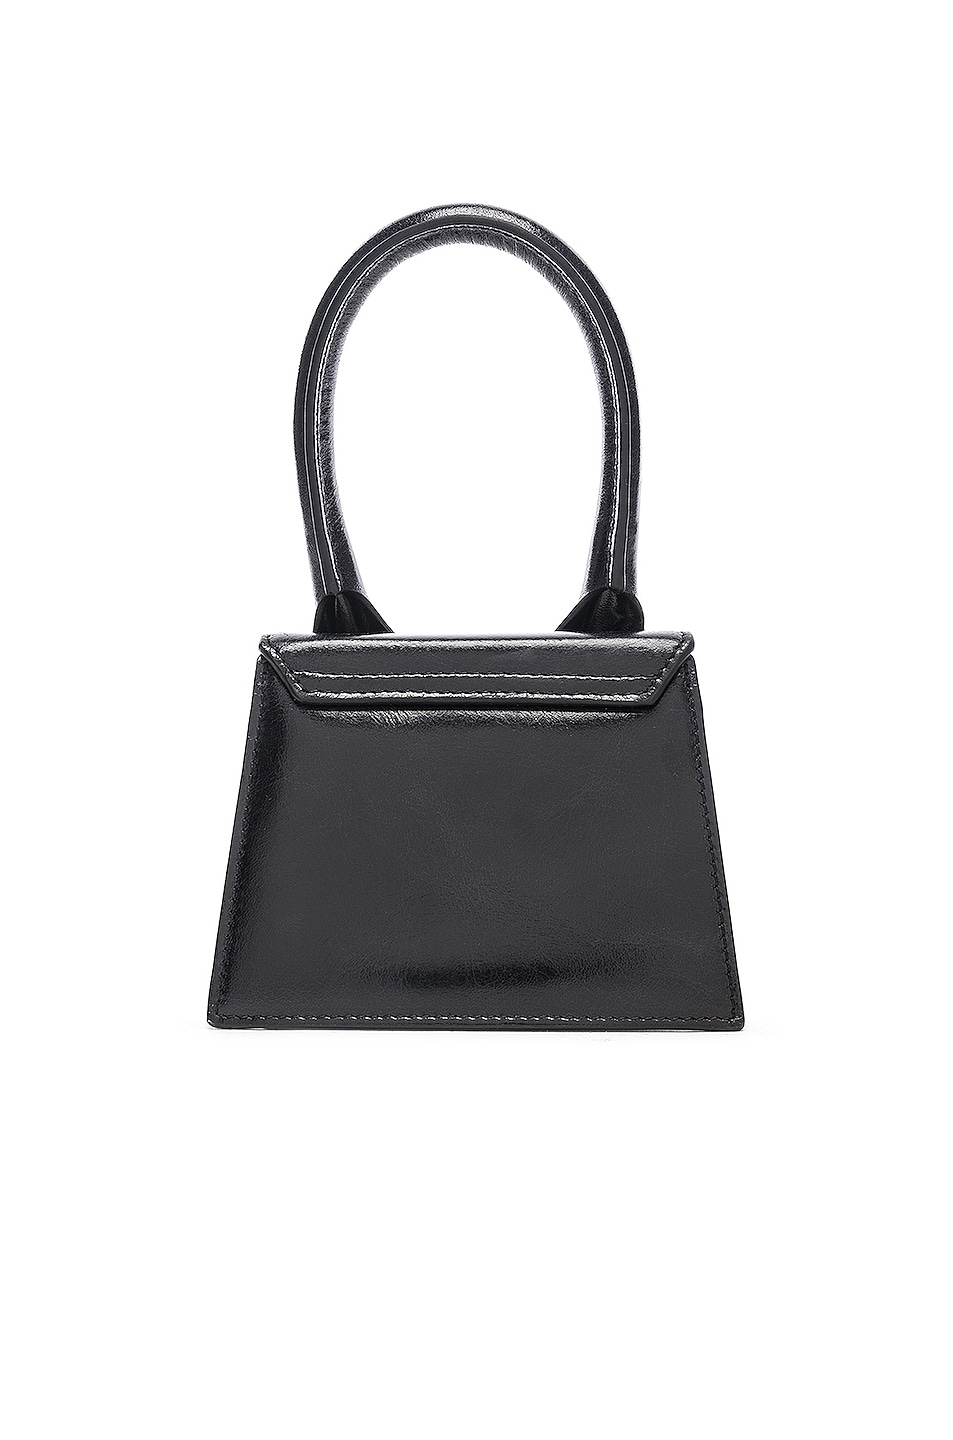 Image 3 of JACQUEMUS Le Sac Chiquito in Black Leather